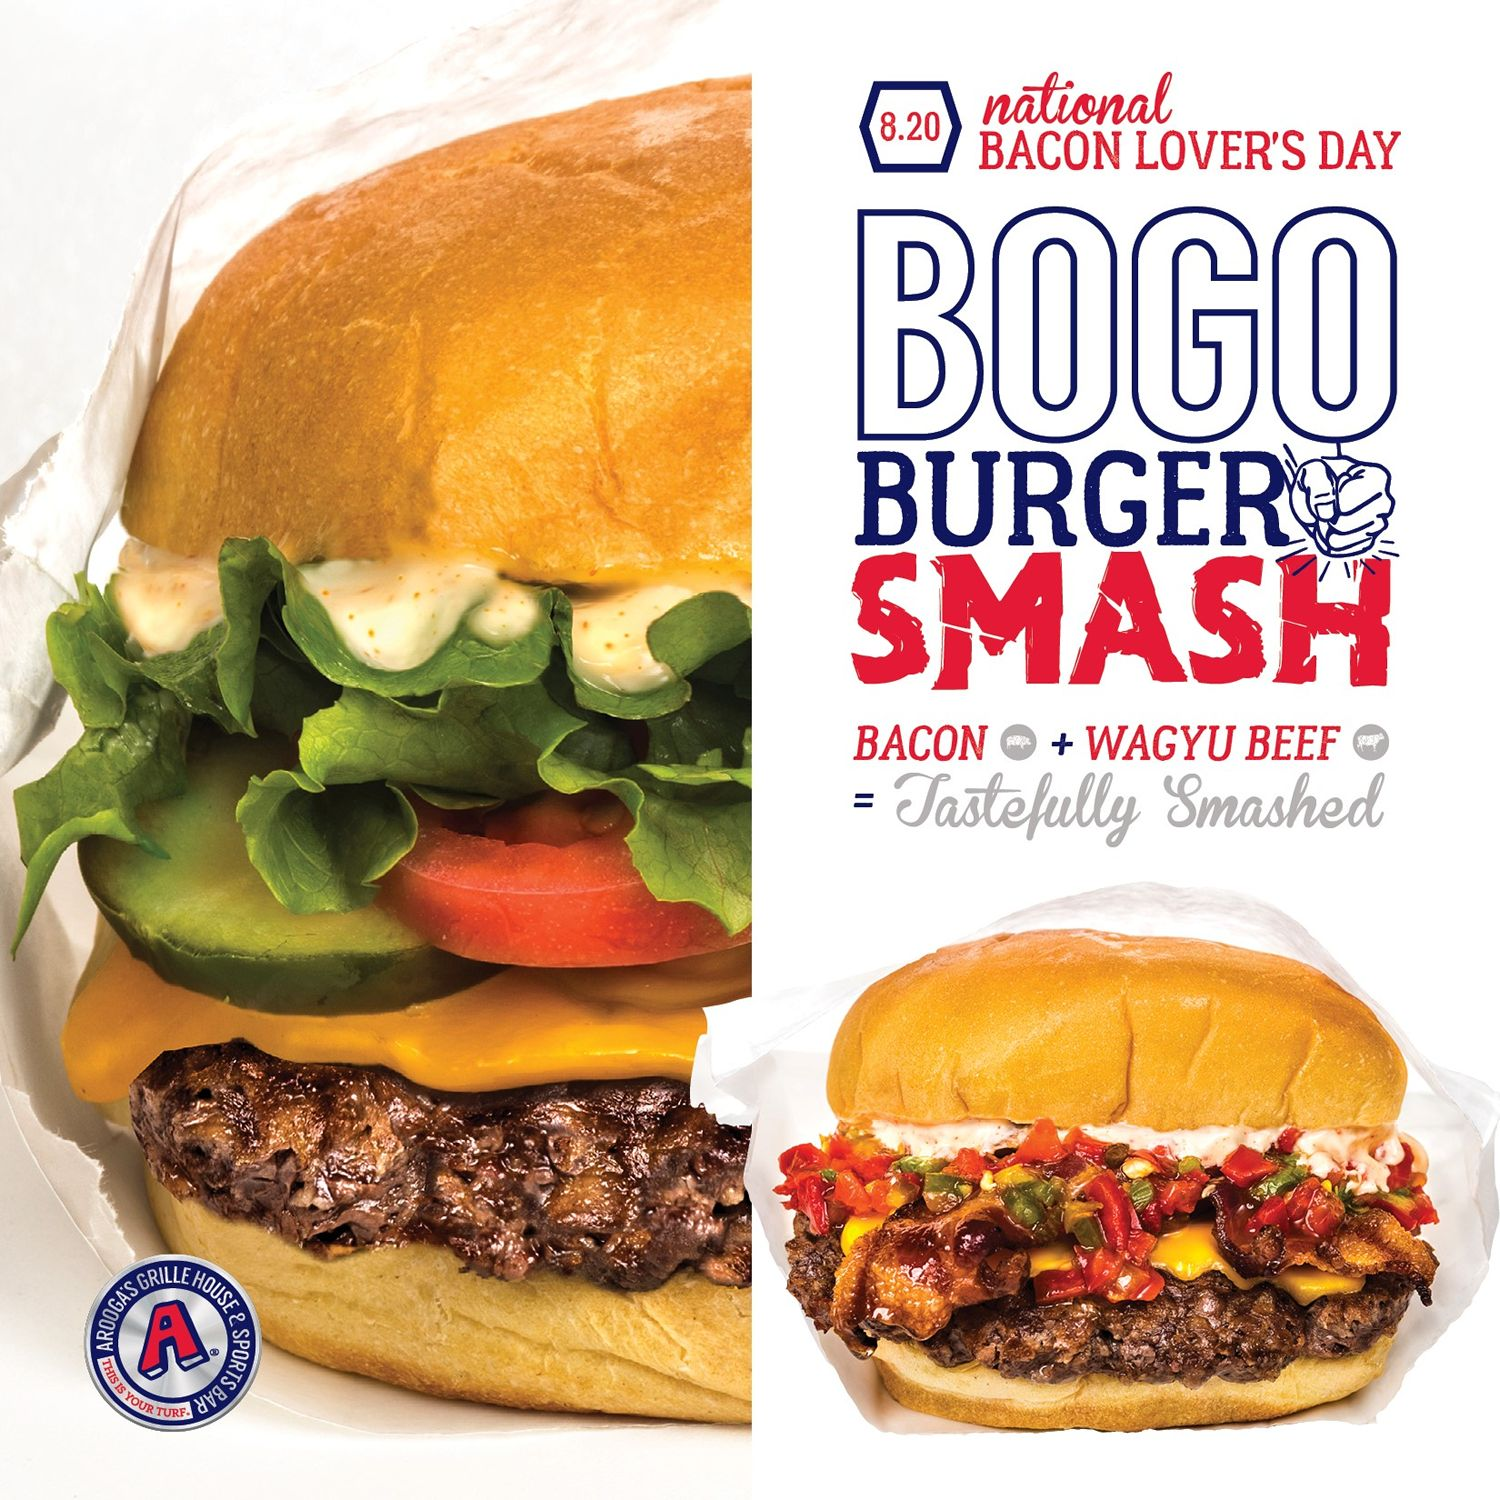 Arooga's Grille House & Sports Bar Offers FREE Bacon Burger Smash LTOs on National Bacon Lover's Day, Sunday August 20, 2017